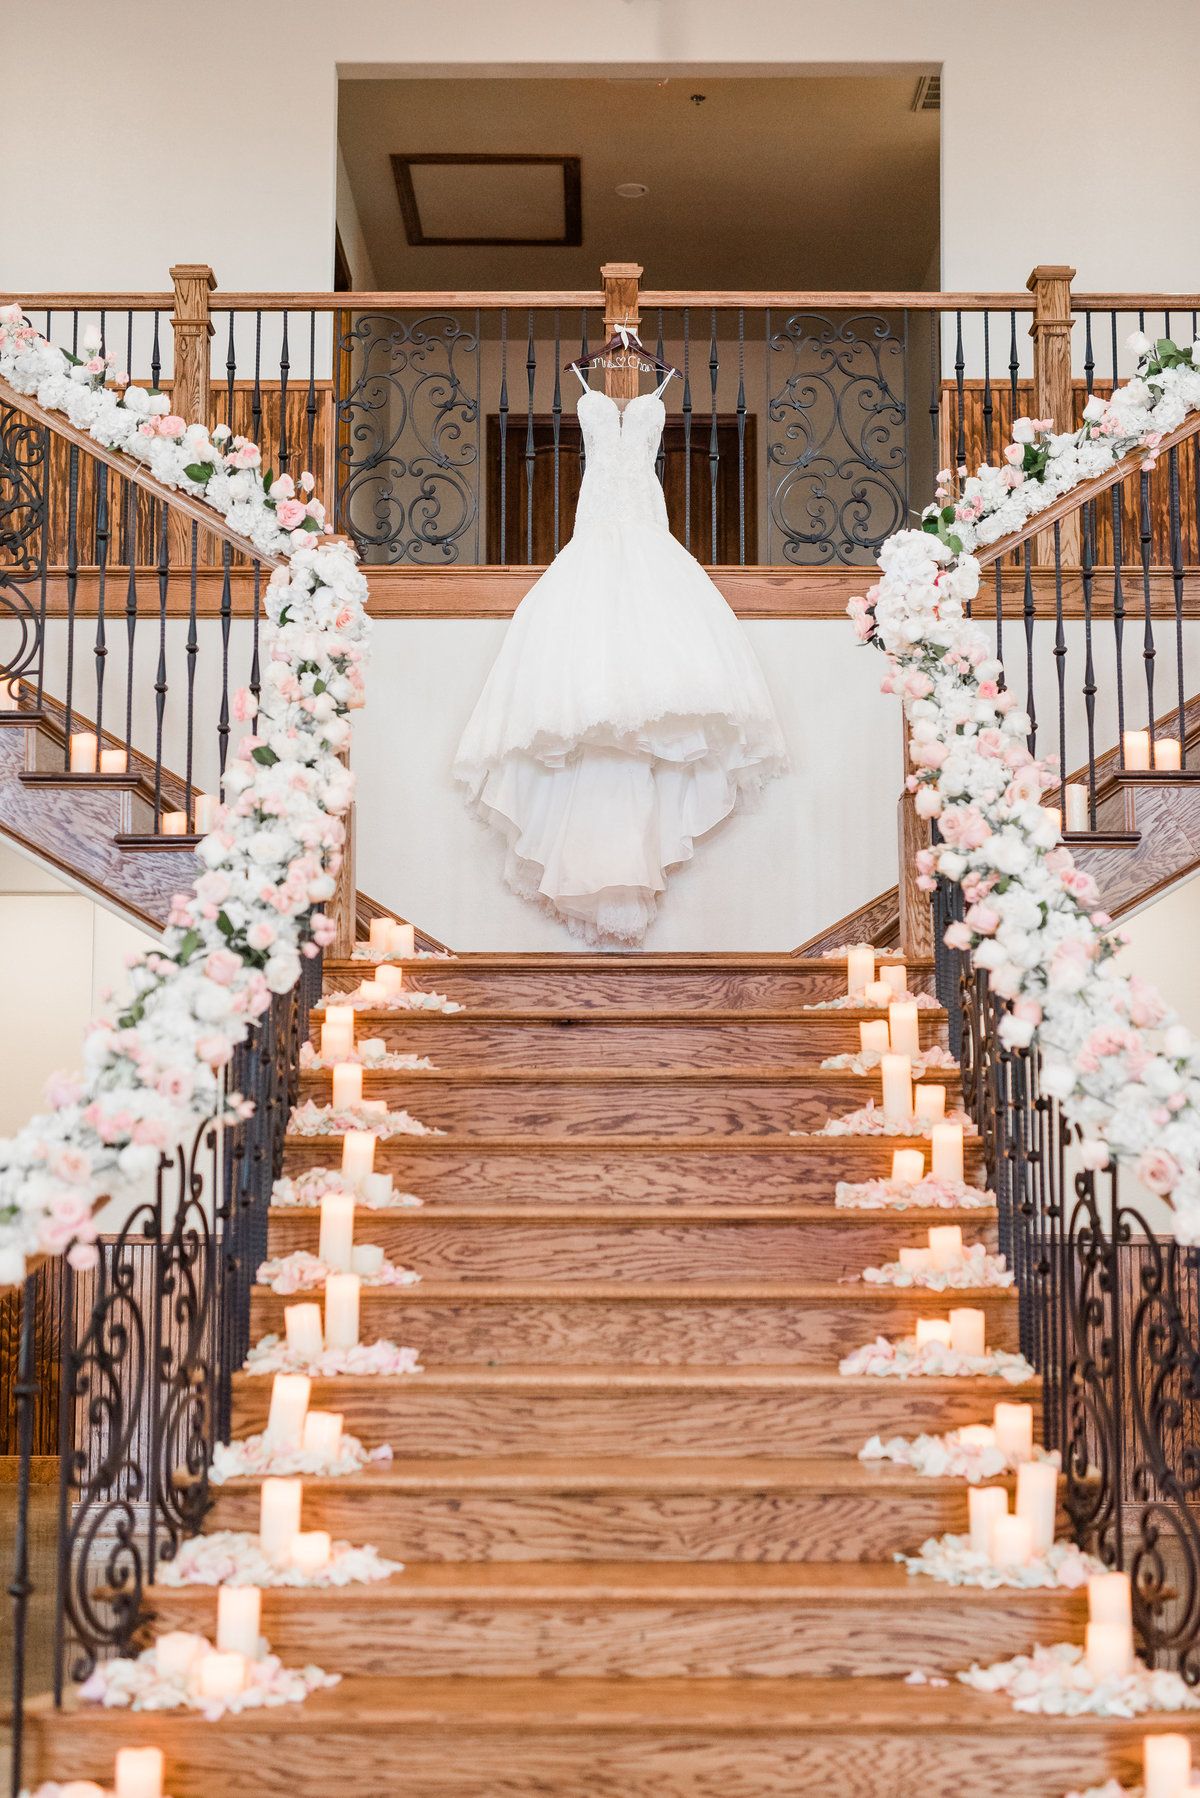 Dress on Stairs at Springs Venue Anna